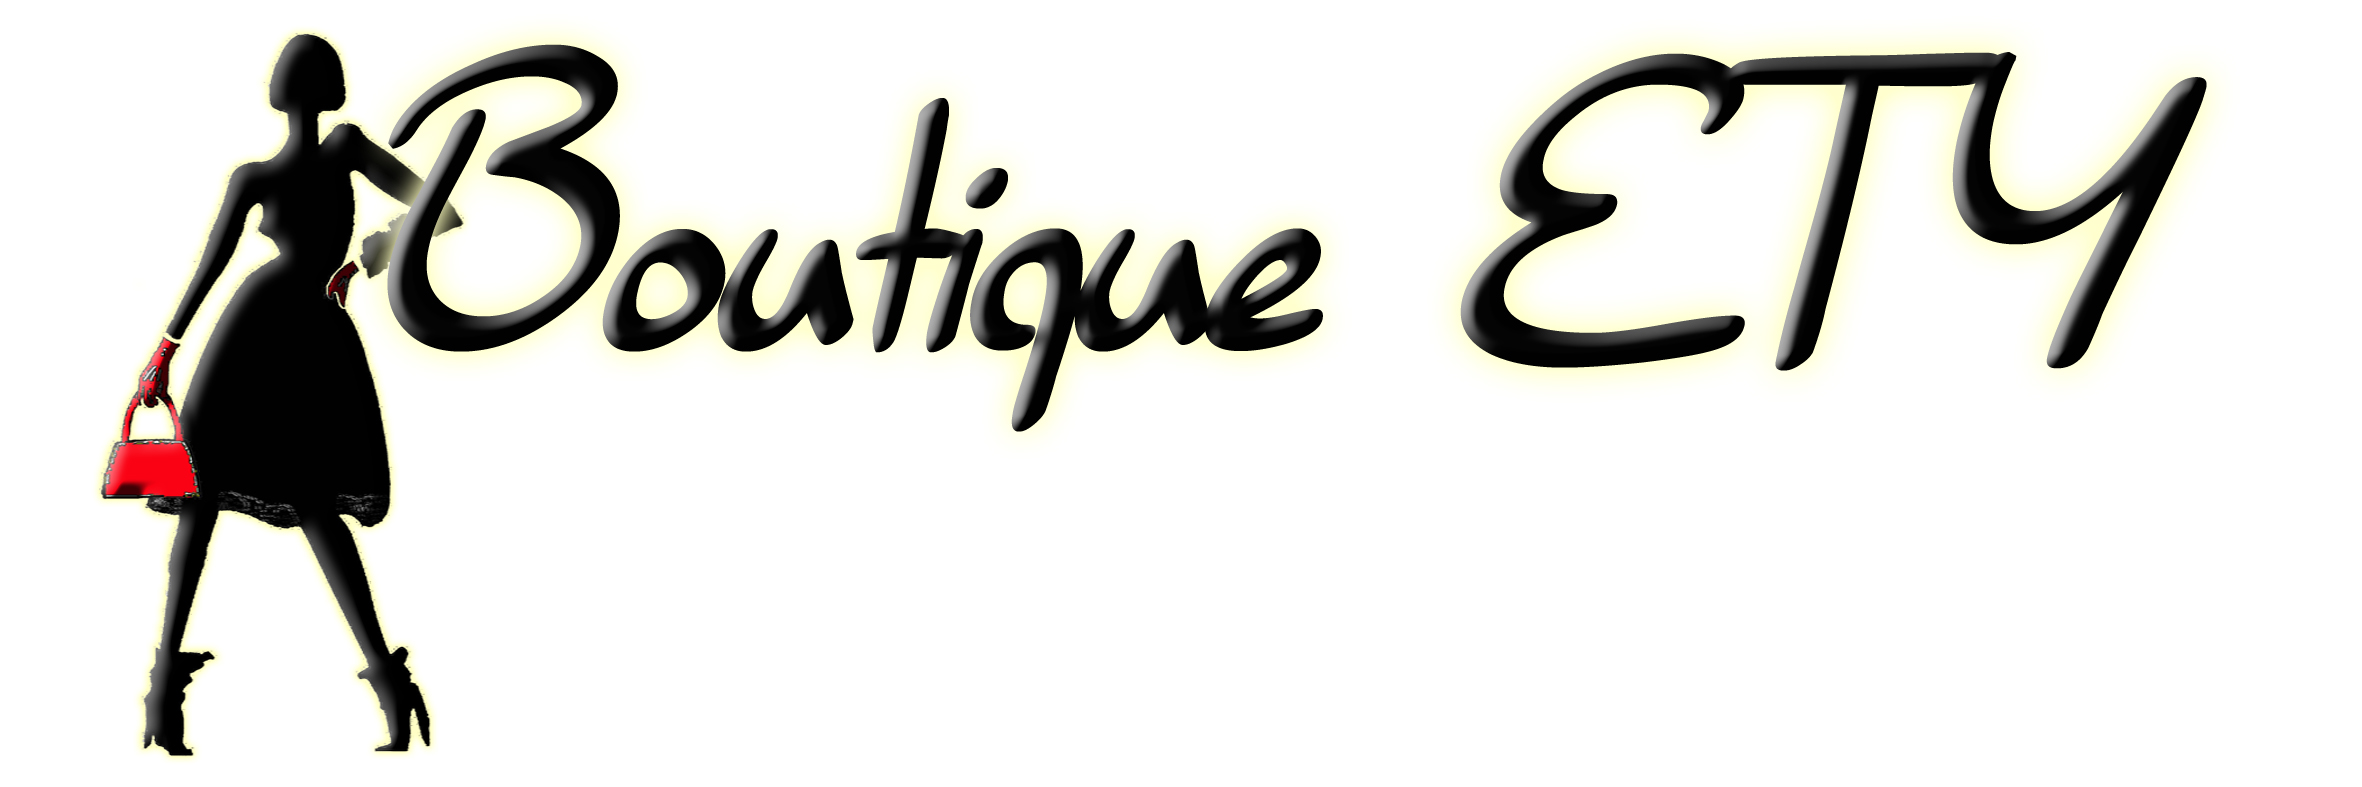 Banniere Boutique Ety